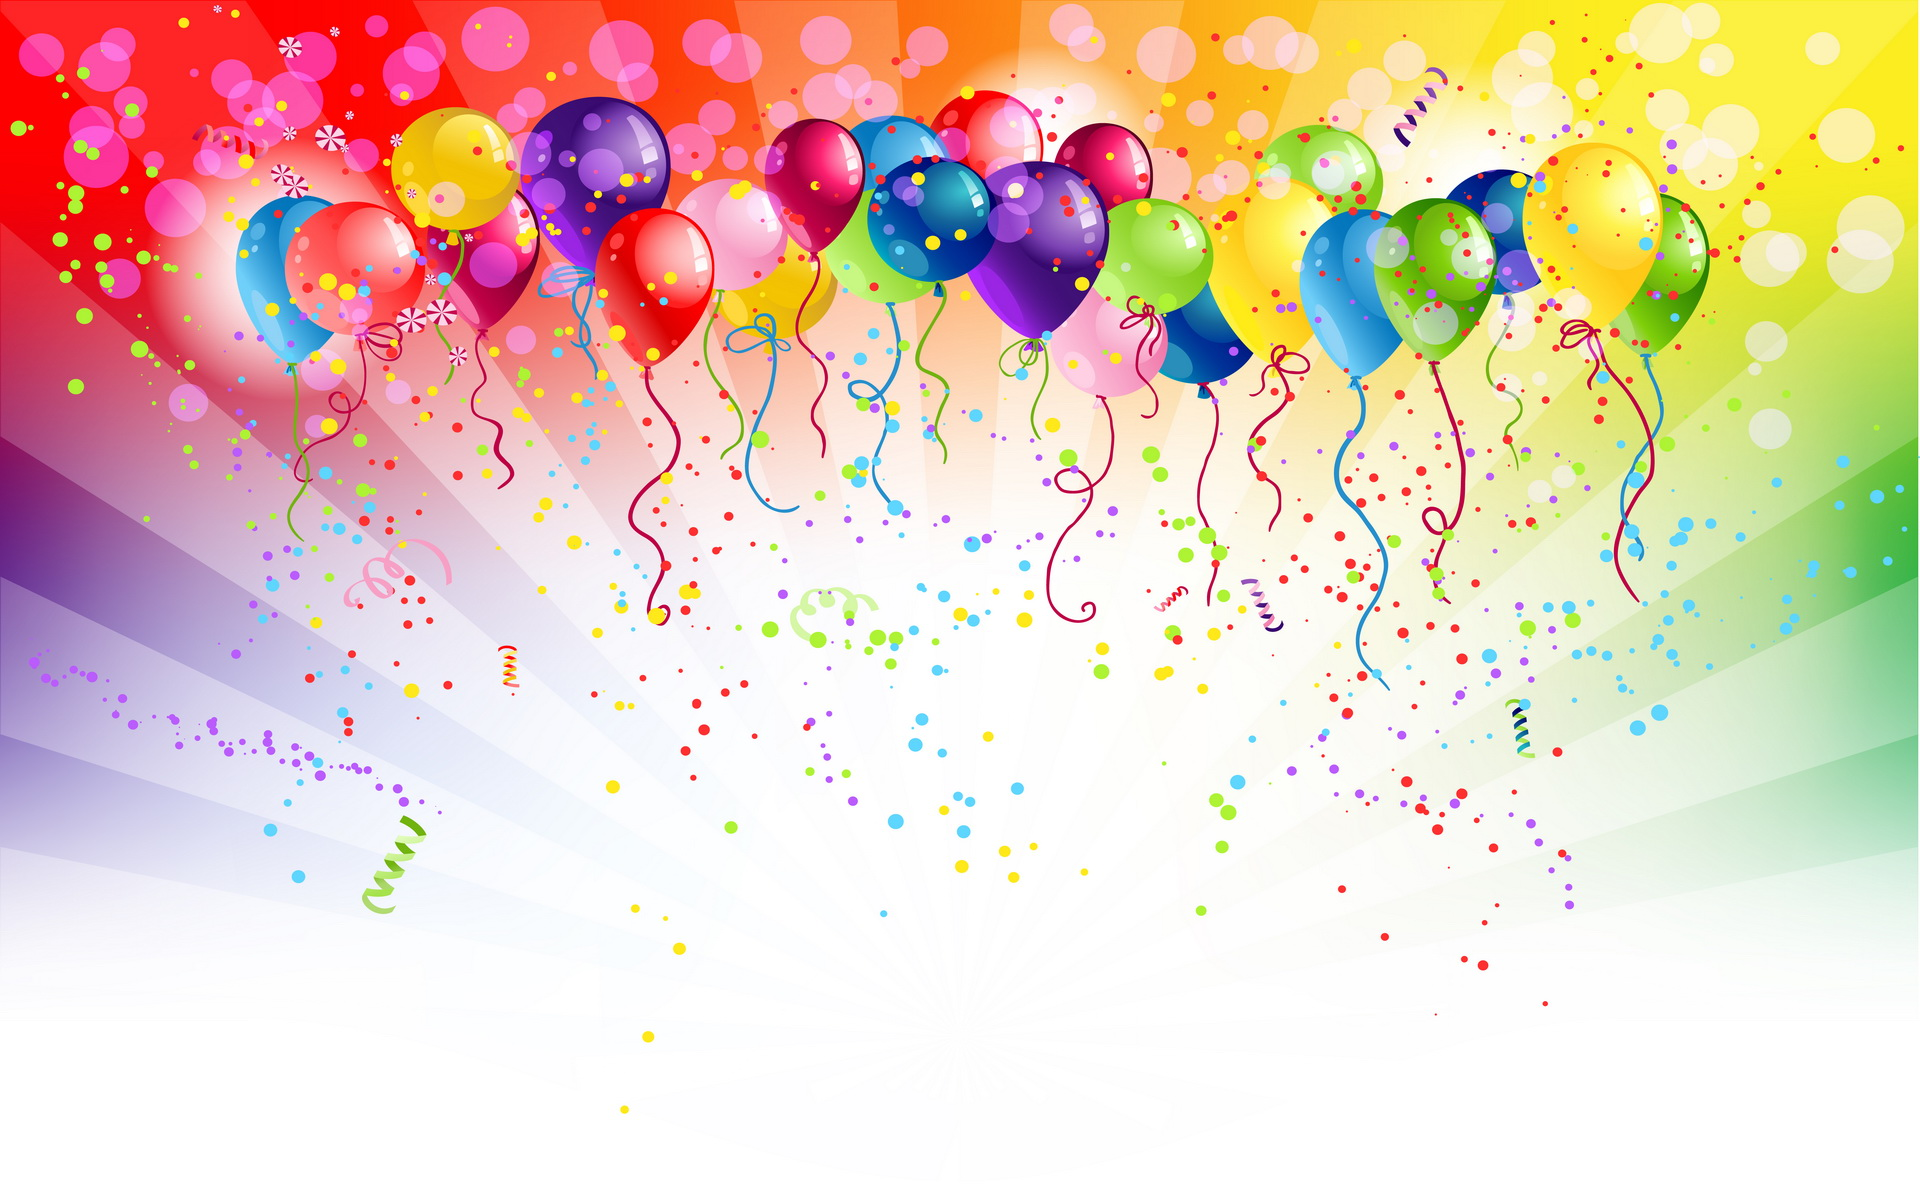 Free Birthday Balloon Images Download Free Clip Art Free